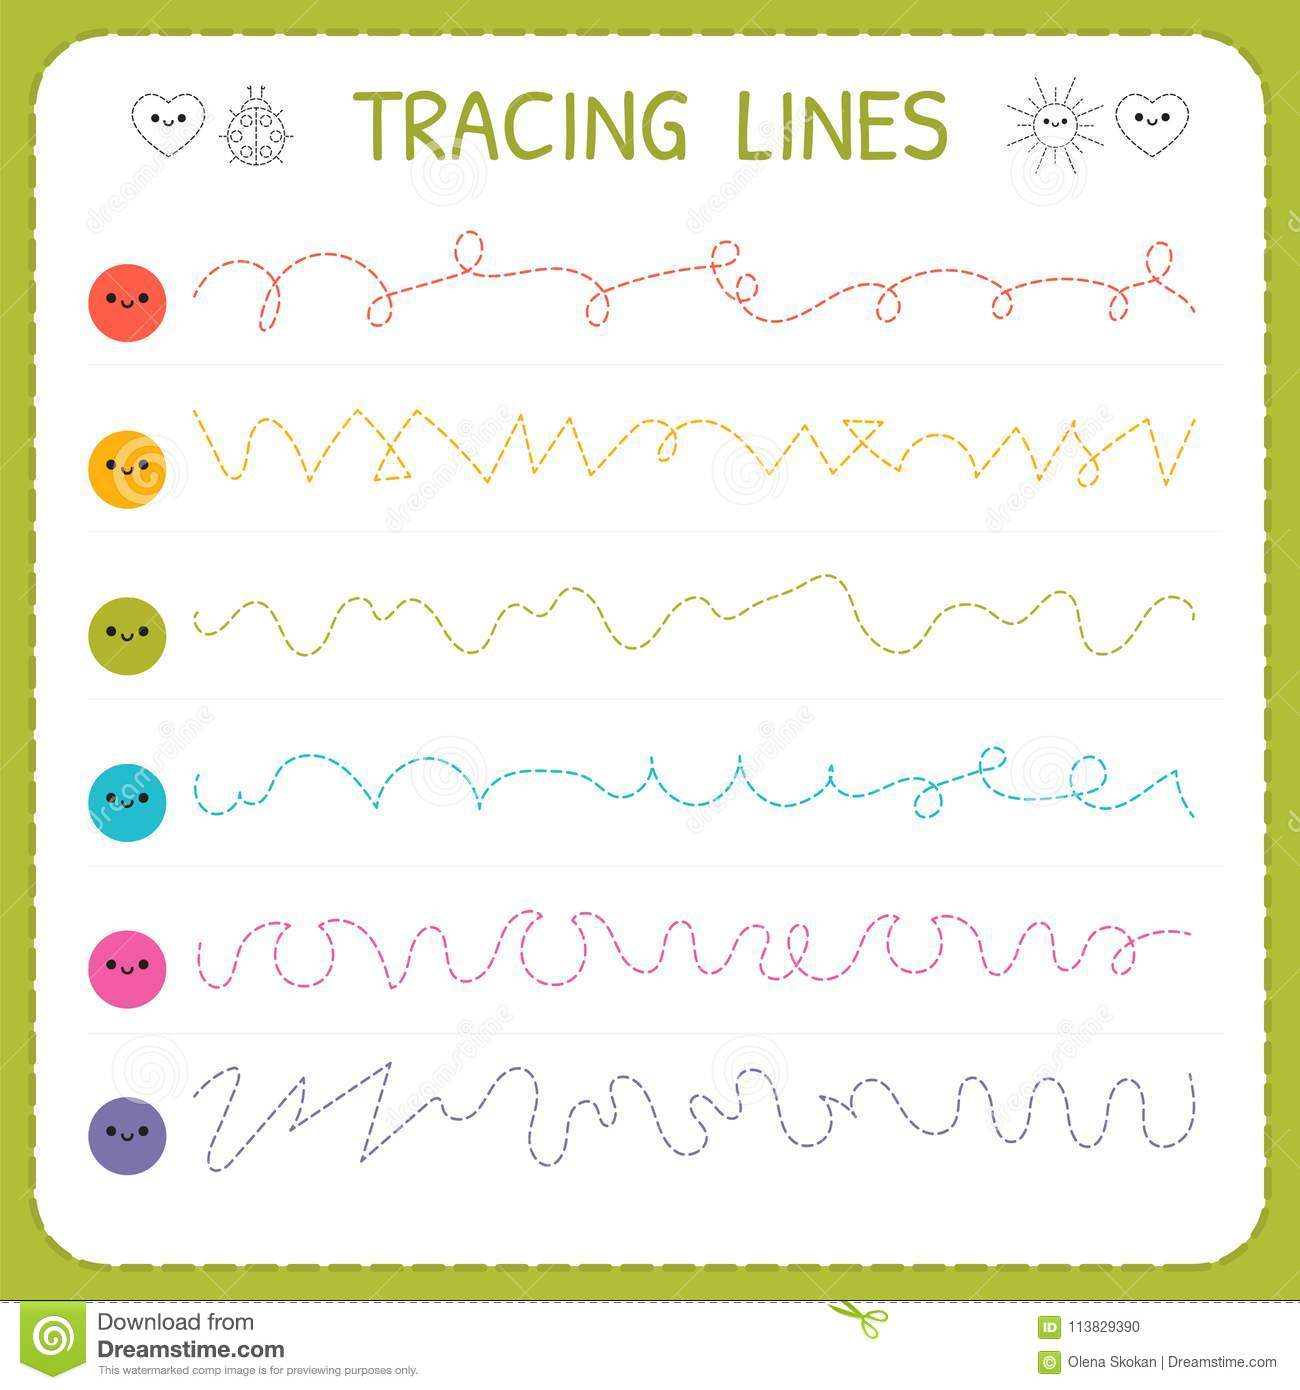 Tracing Lines Basic Writing Worksheet For Kids Working Pages For Children Trace The Pattern